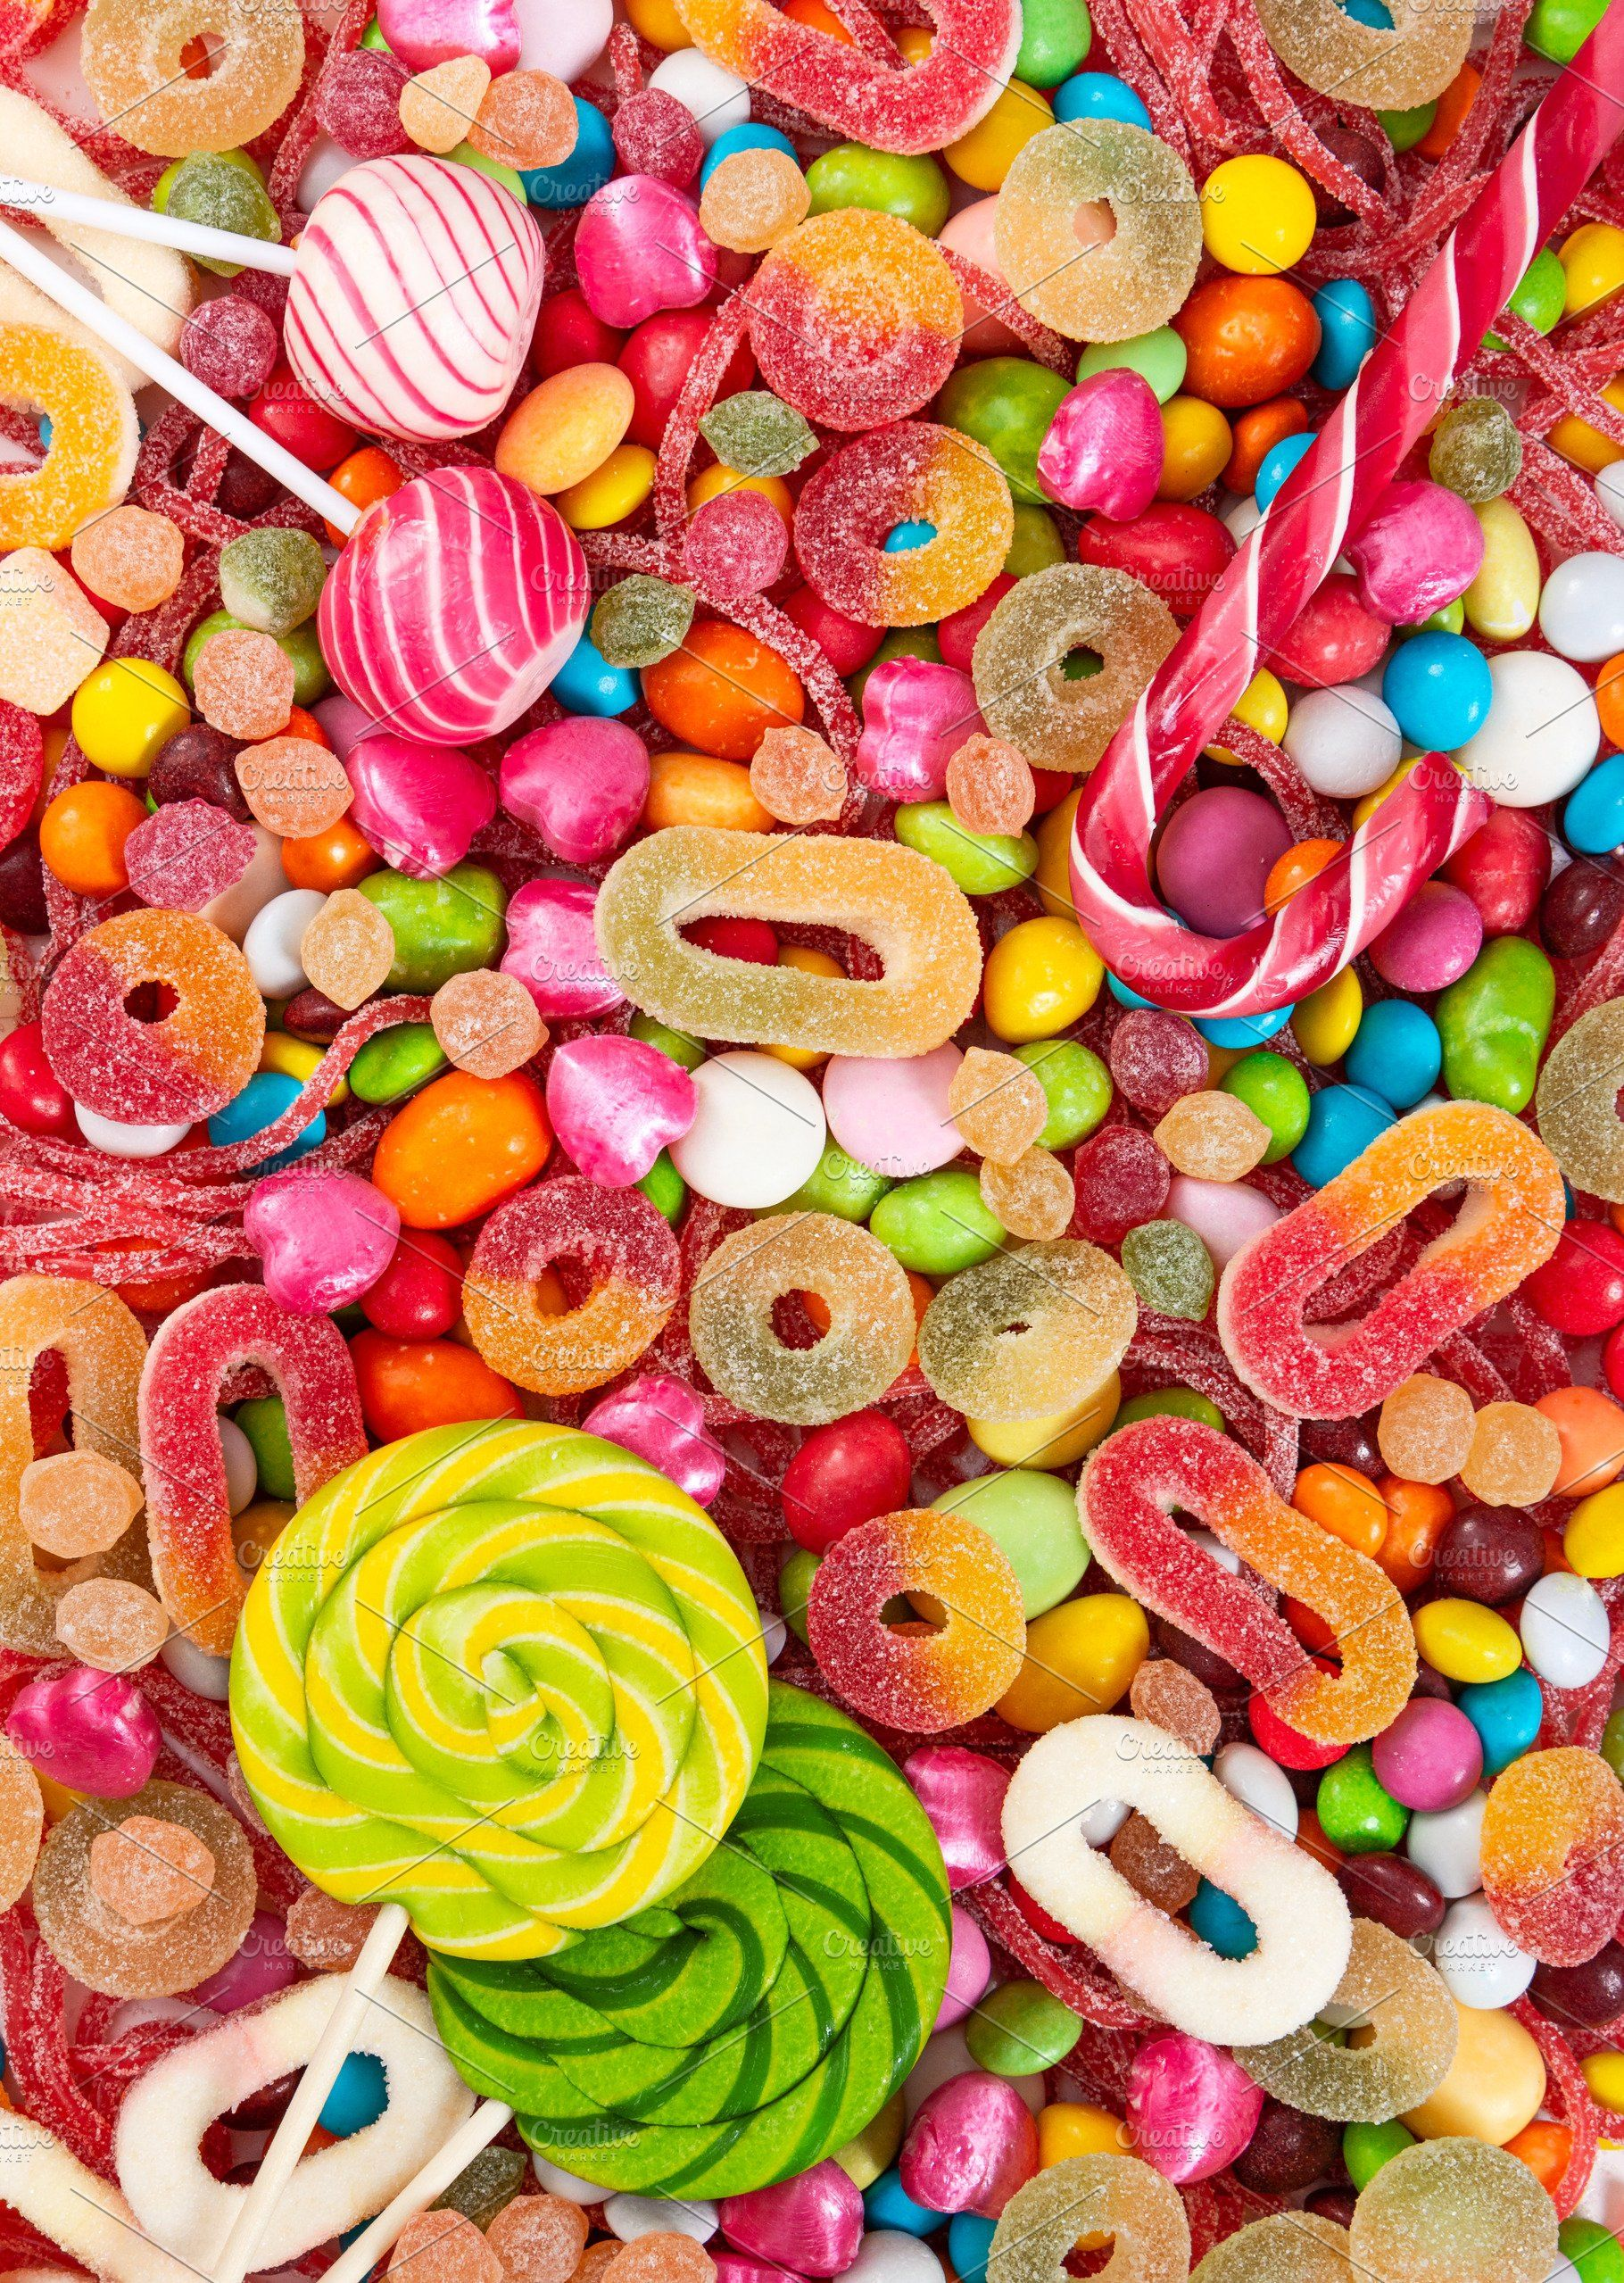 Colorful Lollipops And Candies Candy Pictures Candy Photography Cute Food Wallpaper